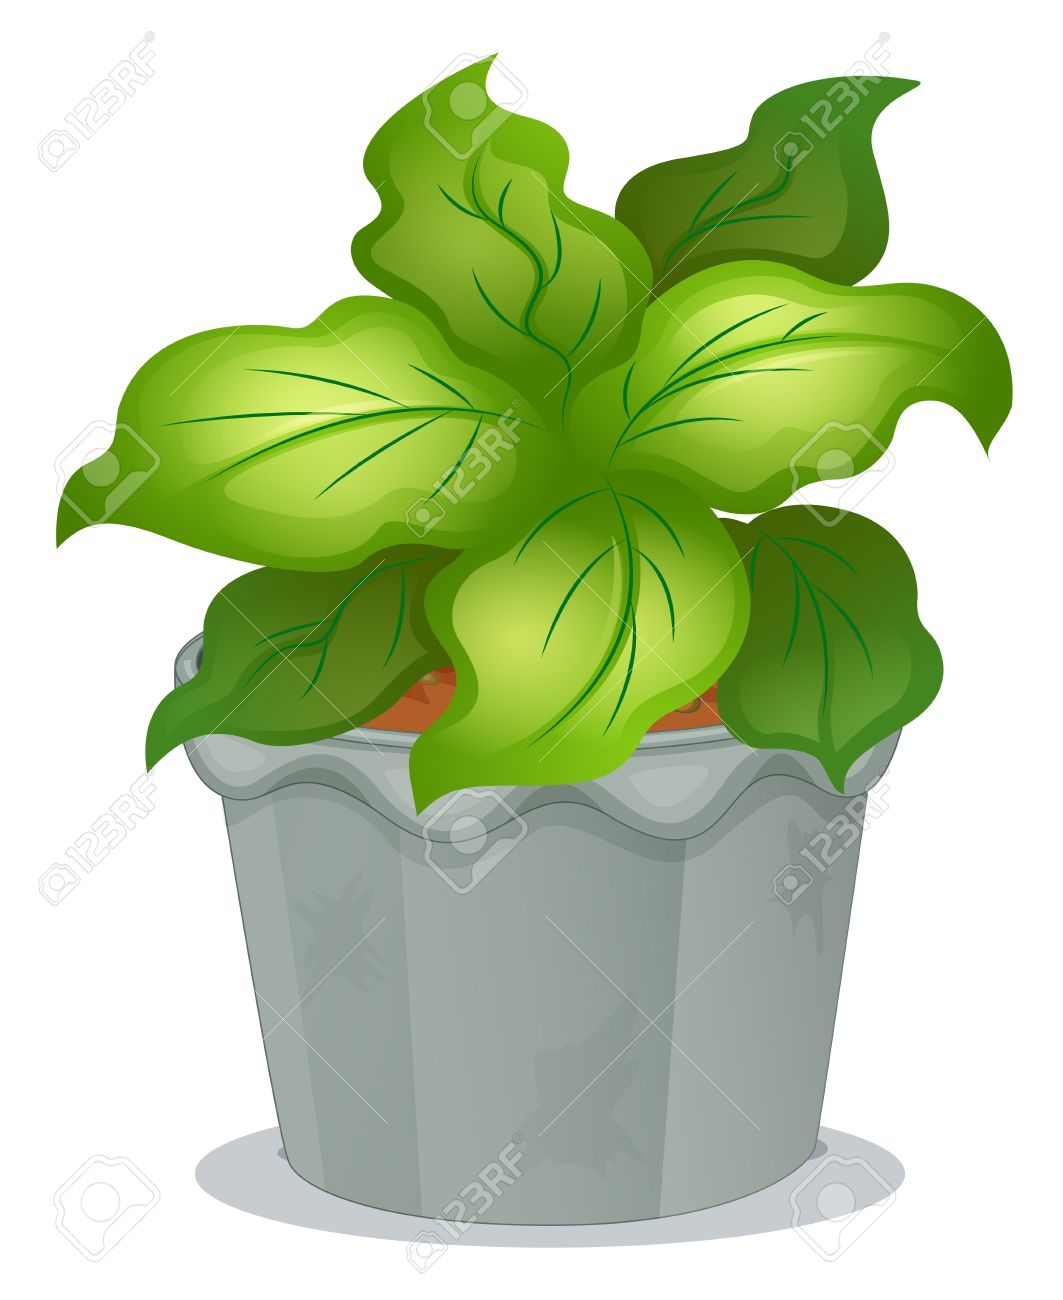 Illustration of a green ornamental plant on a white background Stock Vector - 17918393